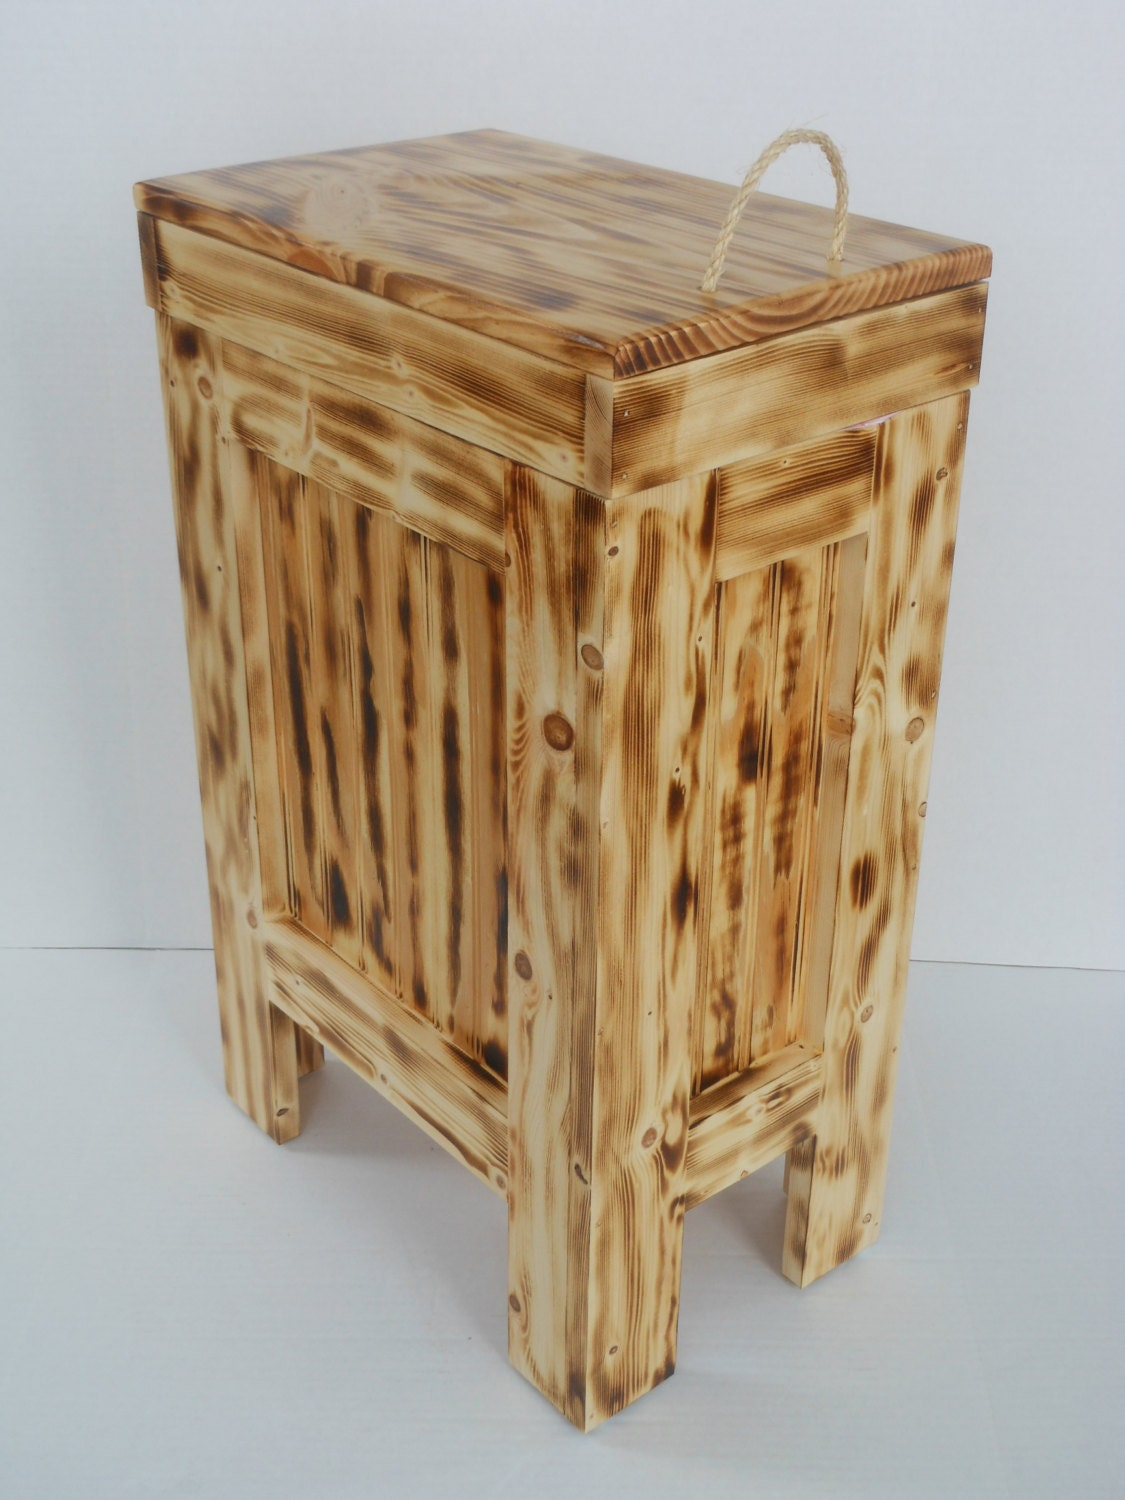 Rustic Wood Wooden Cabin Kitchen Garbage Can By Buffalowoodshop